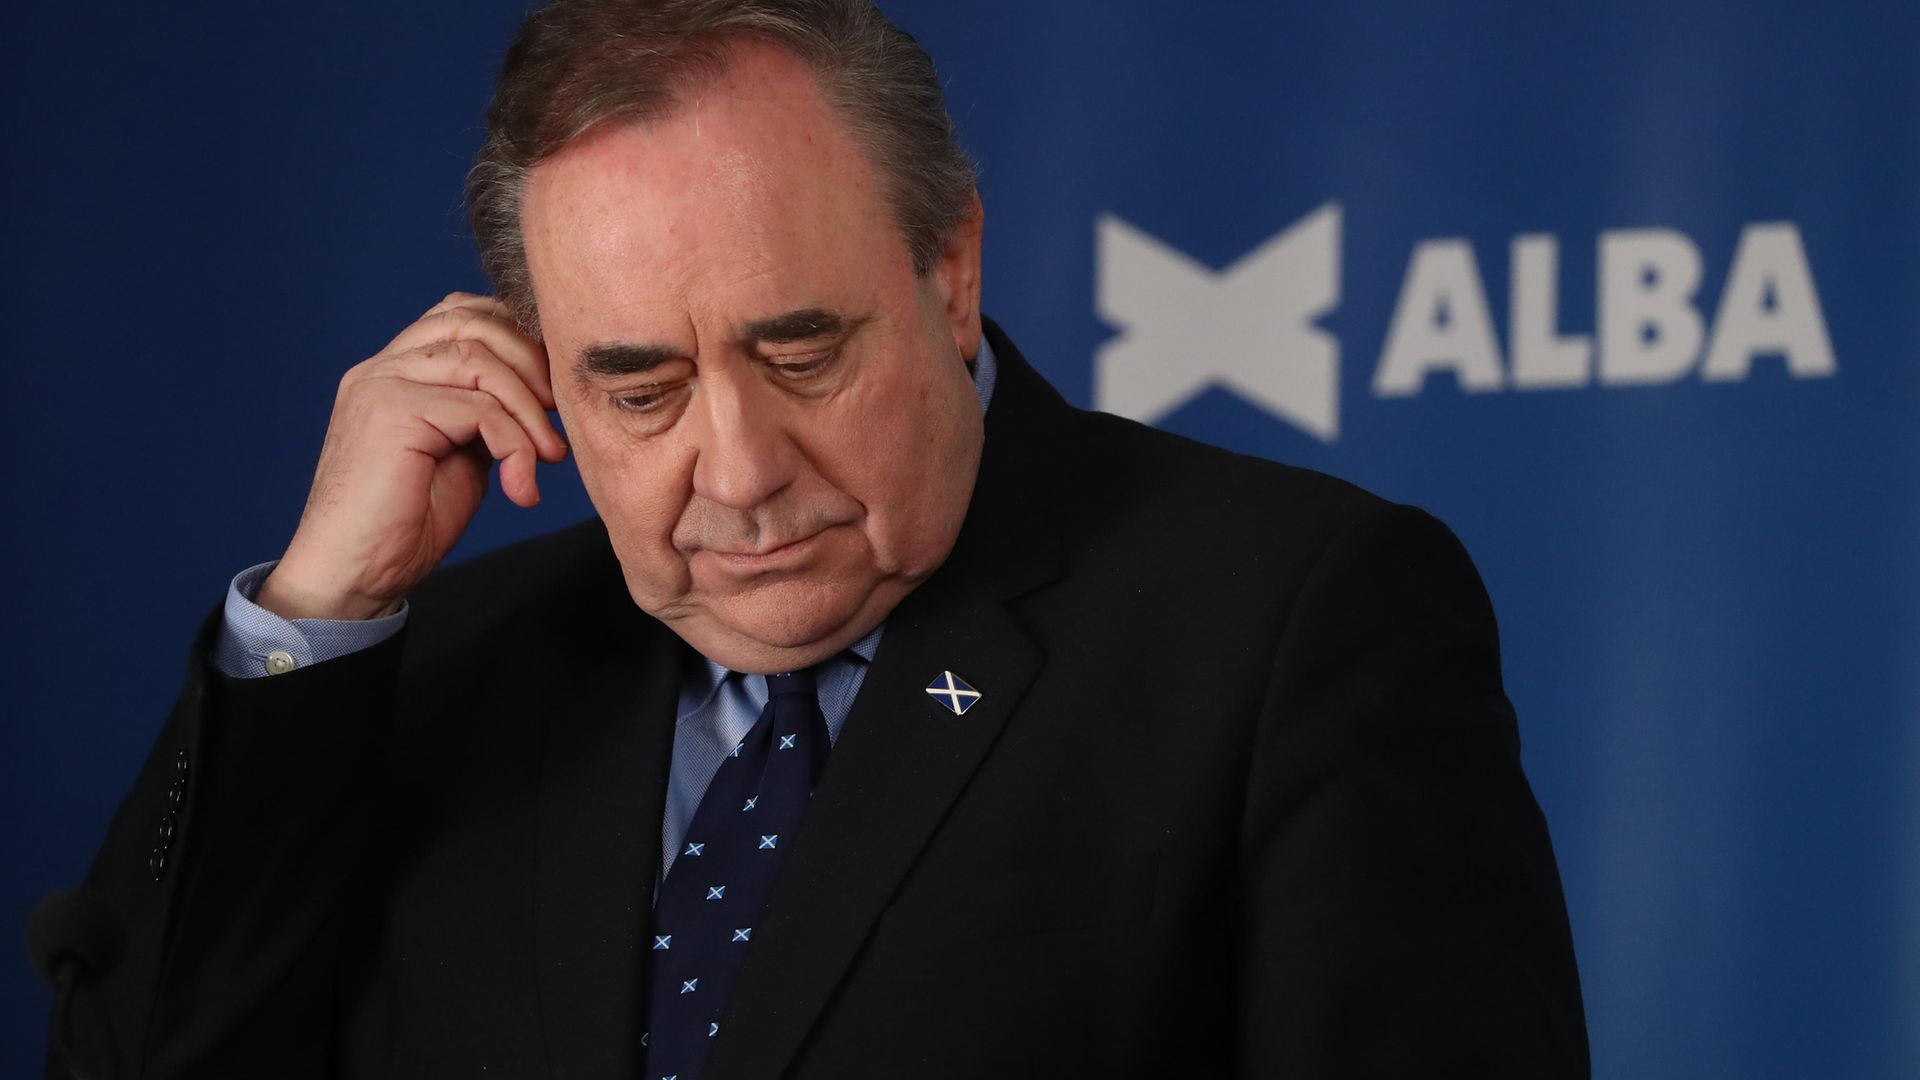 ALBA Party leader and former first minister of Scotland, Alex Salmond - Credit: PA